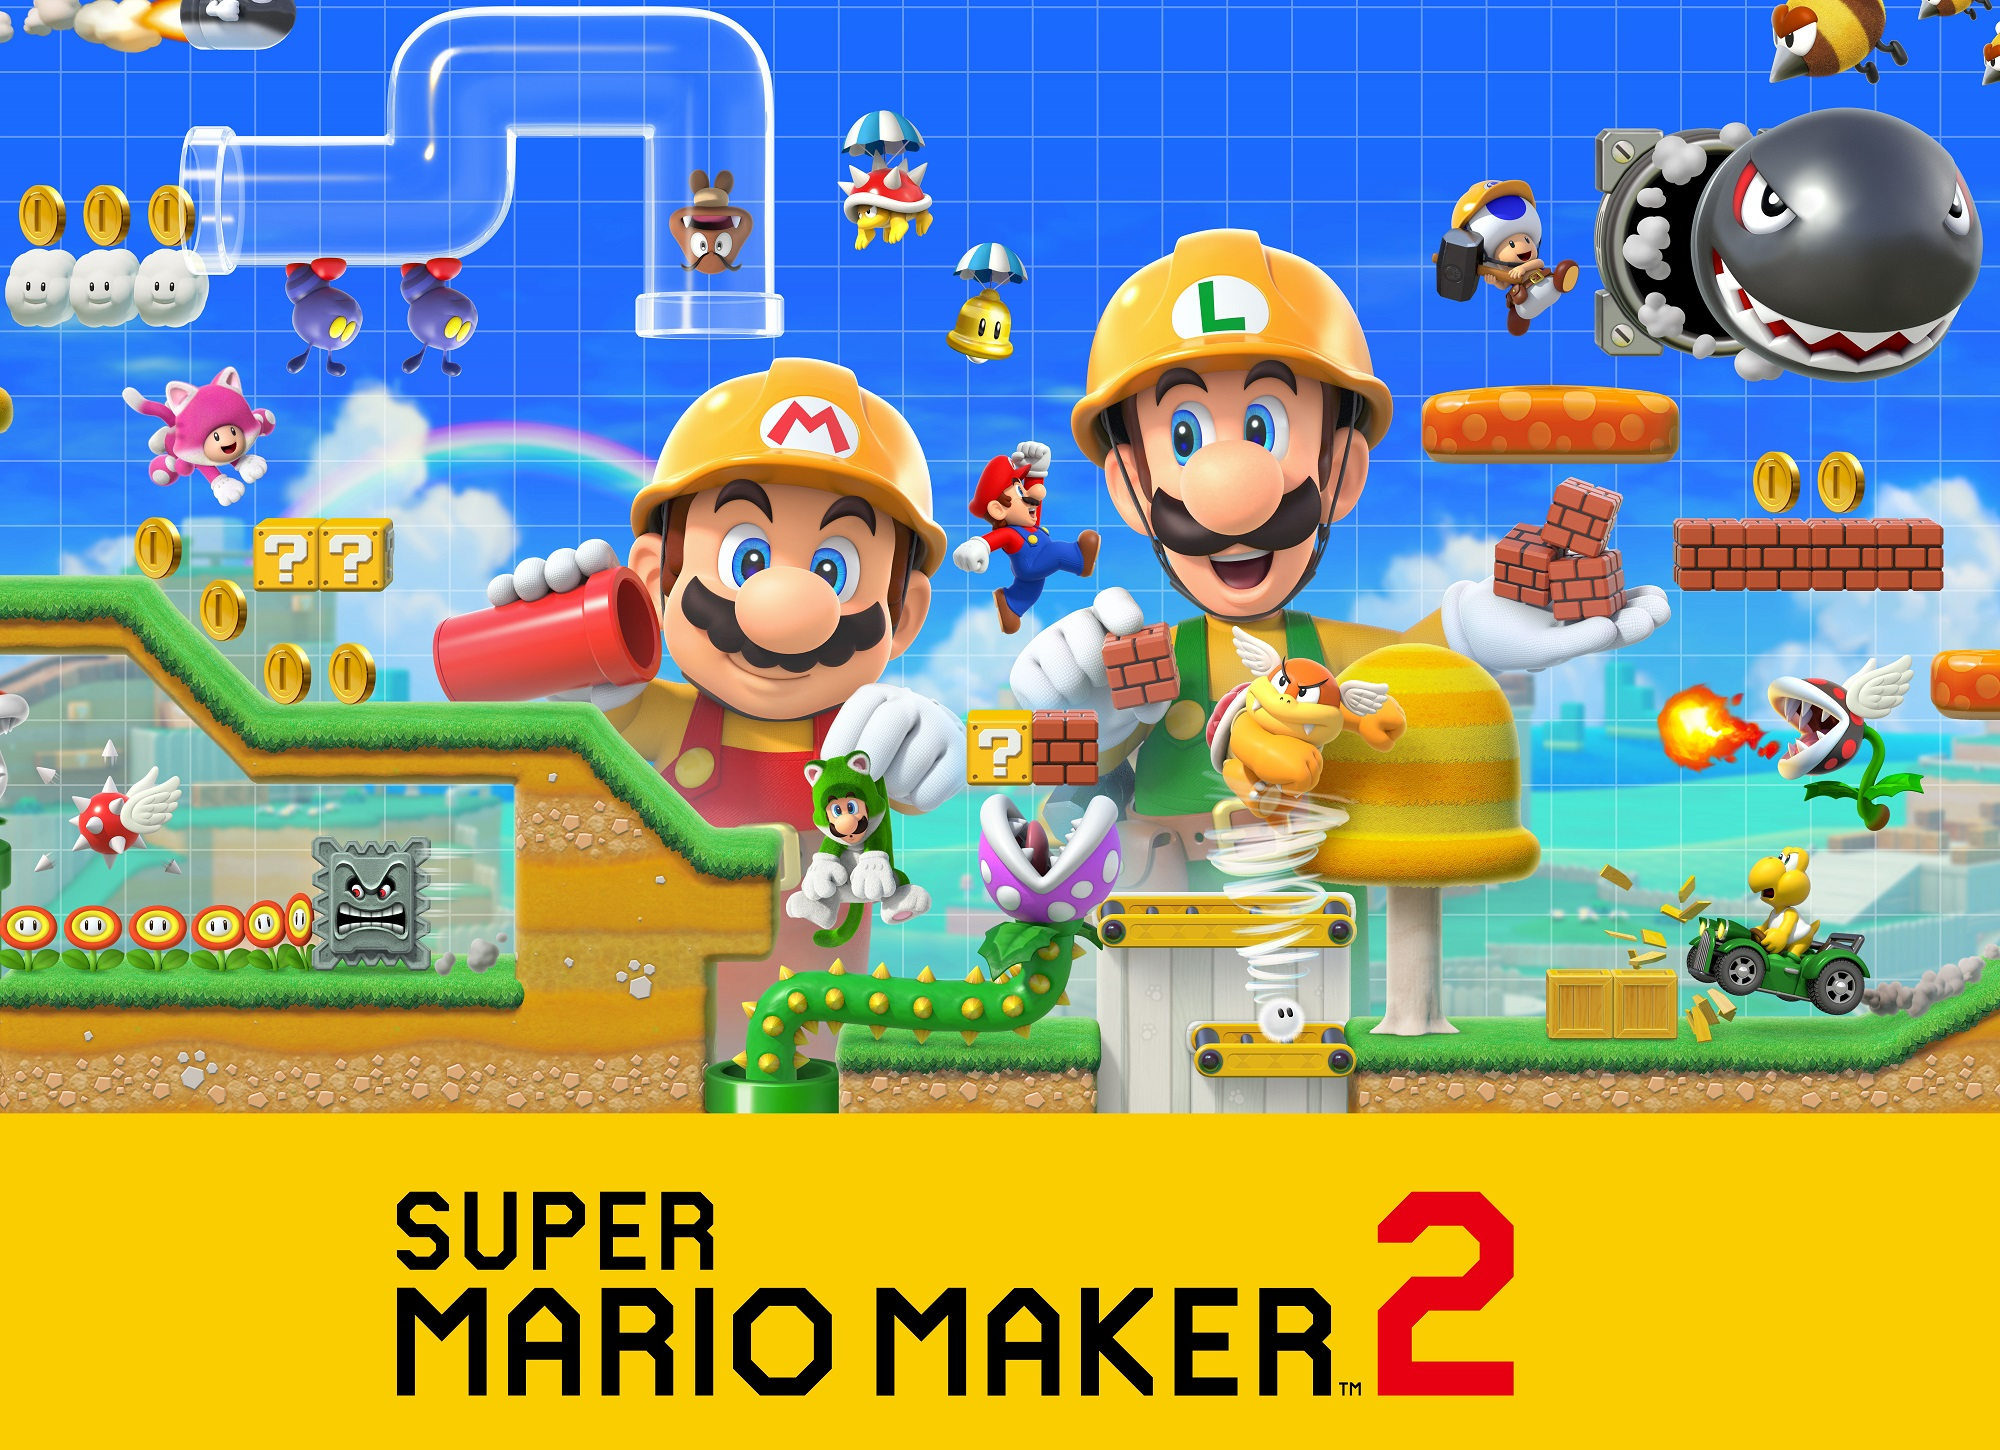 Amiibo's Probably Won't Be Used in Super Mario Maker 2